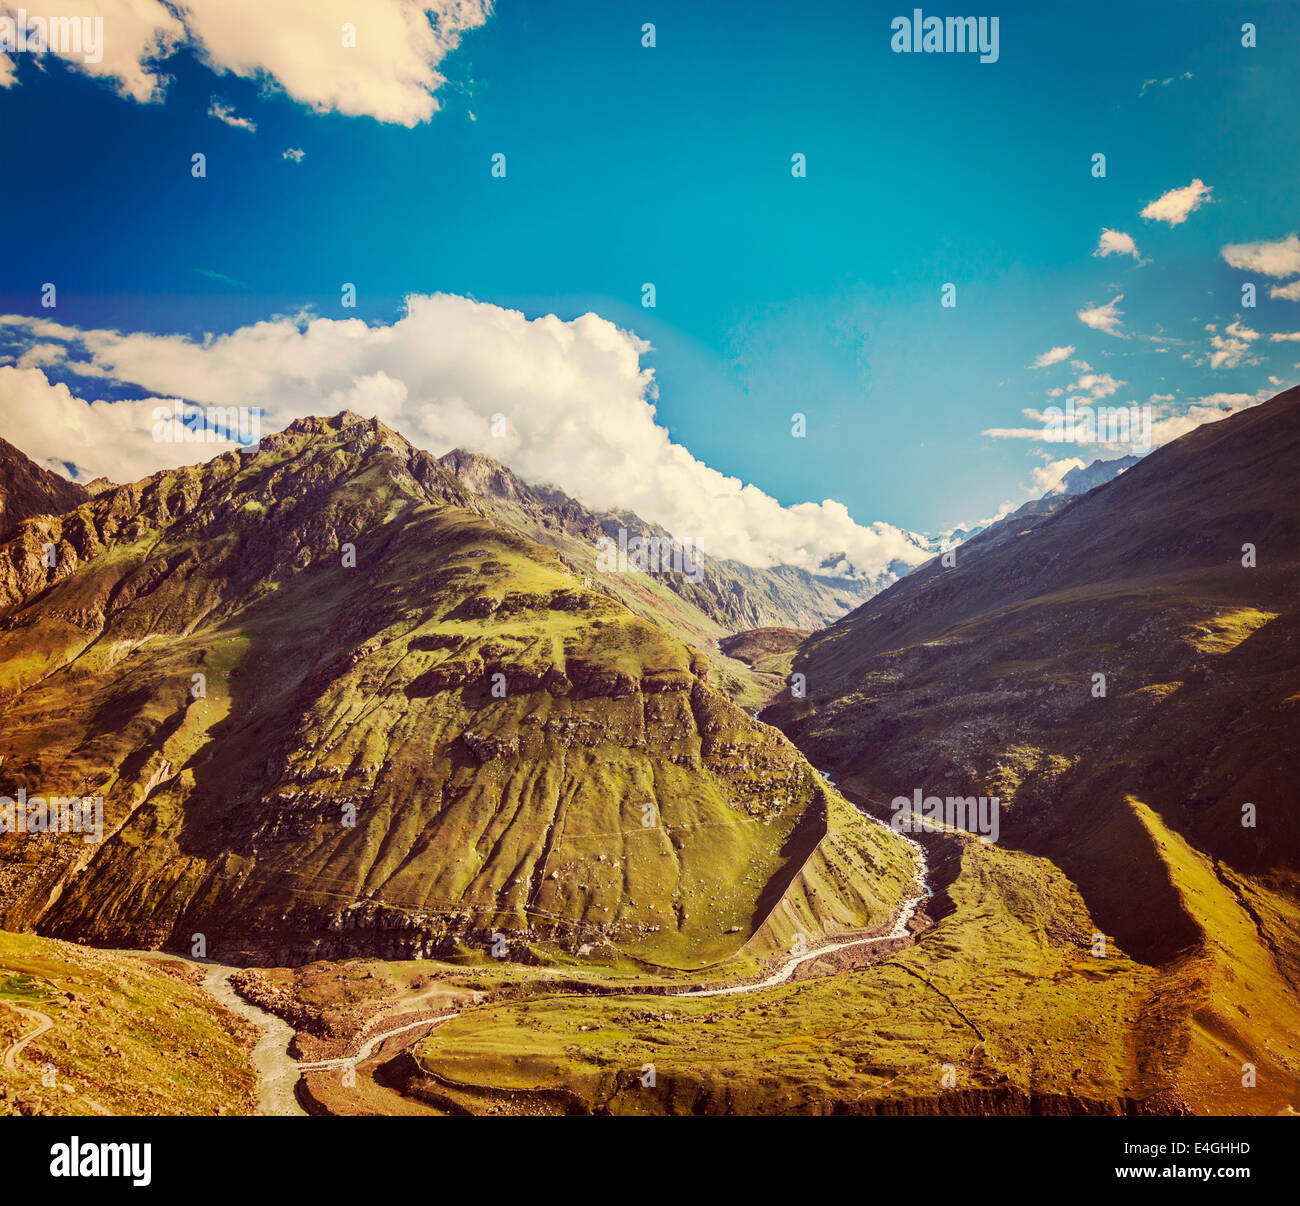 Vintage retro effect filtered hipster style travel image of Himalayan valley in Himalayas. Lahaul valley, Himachal - Stock Image